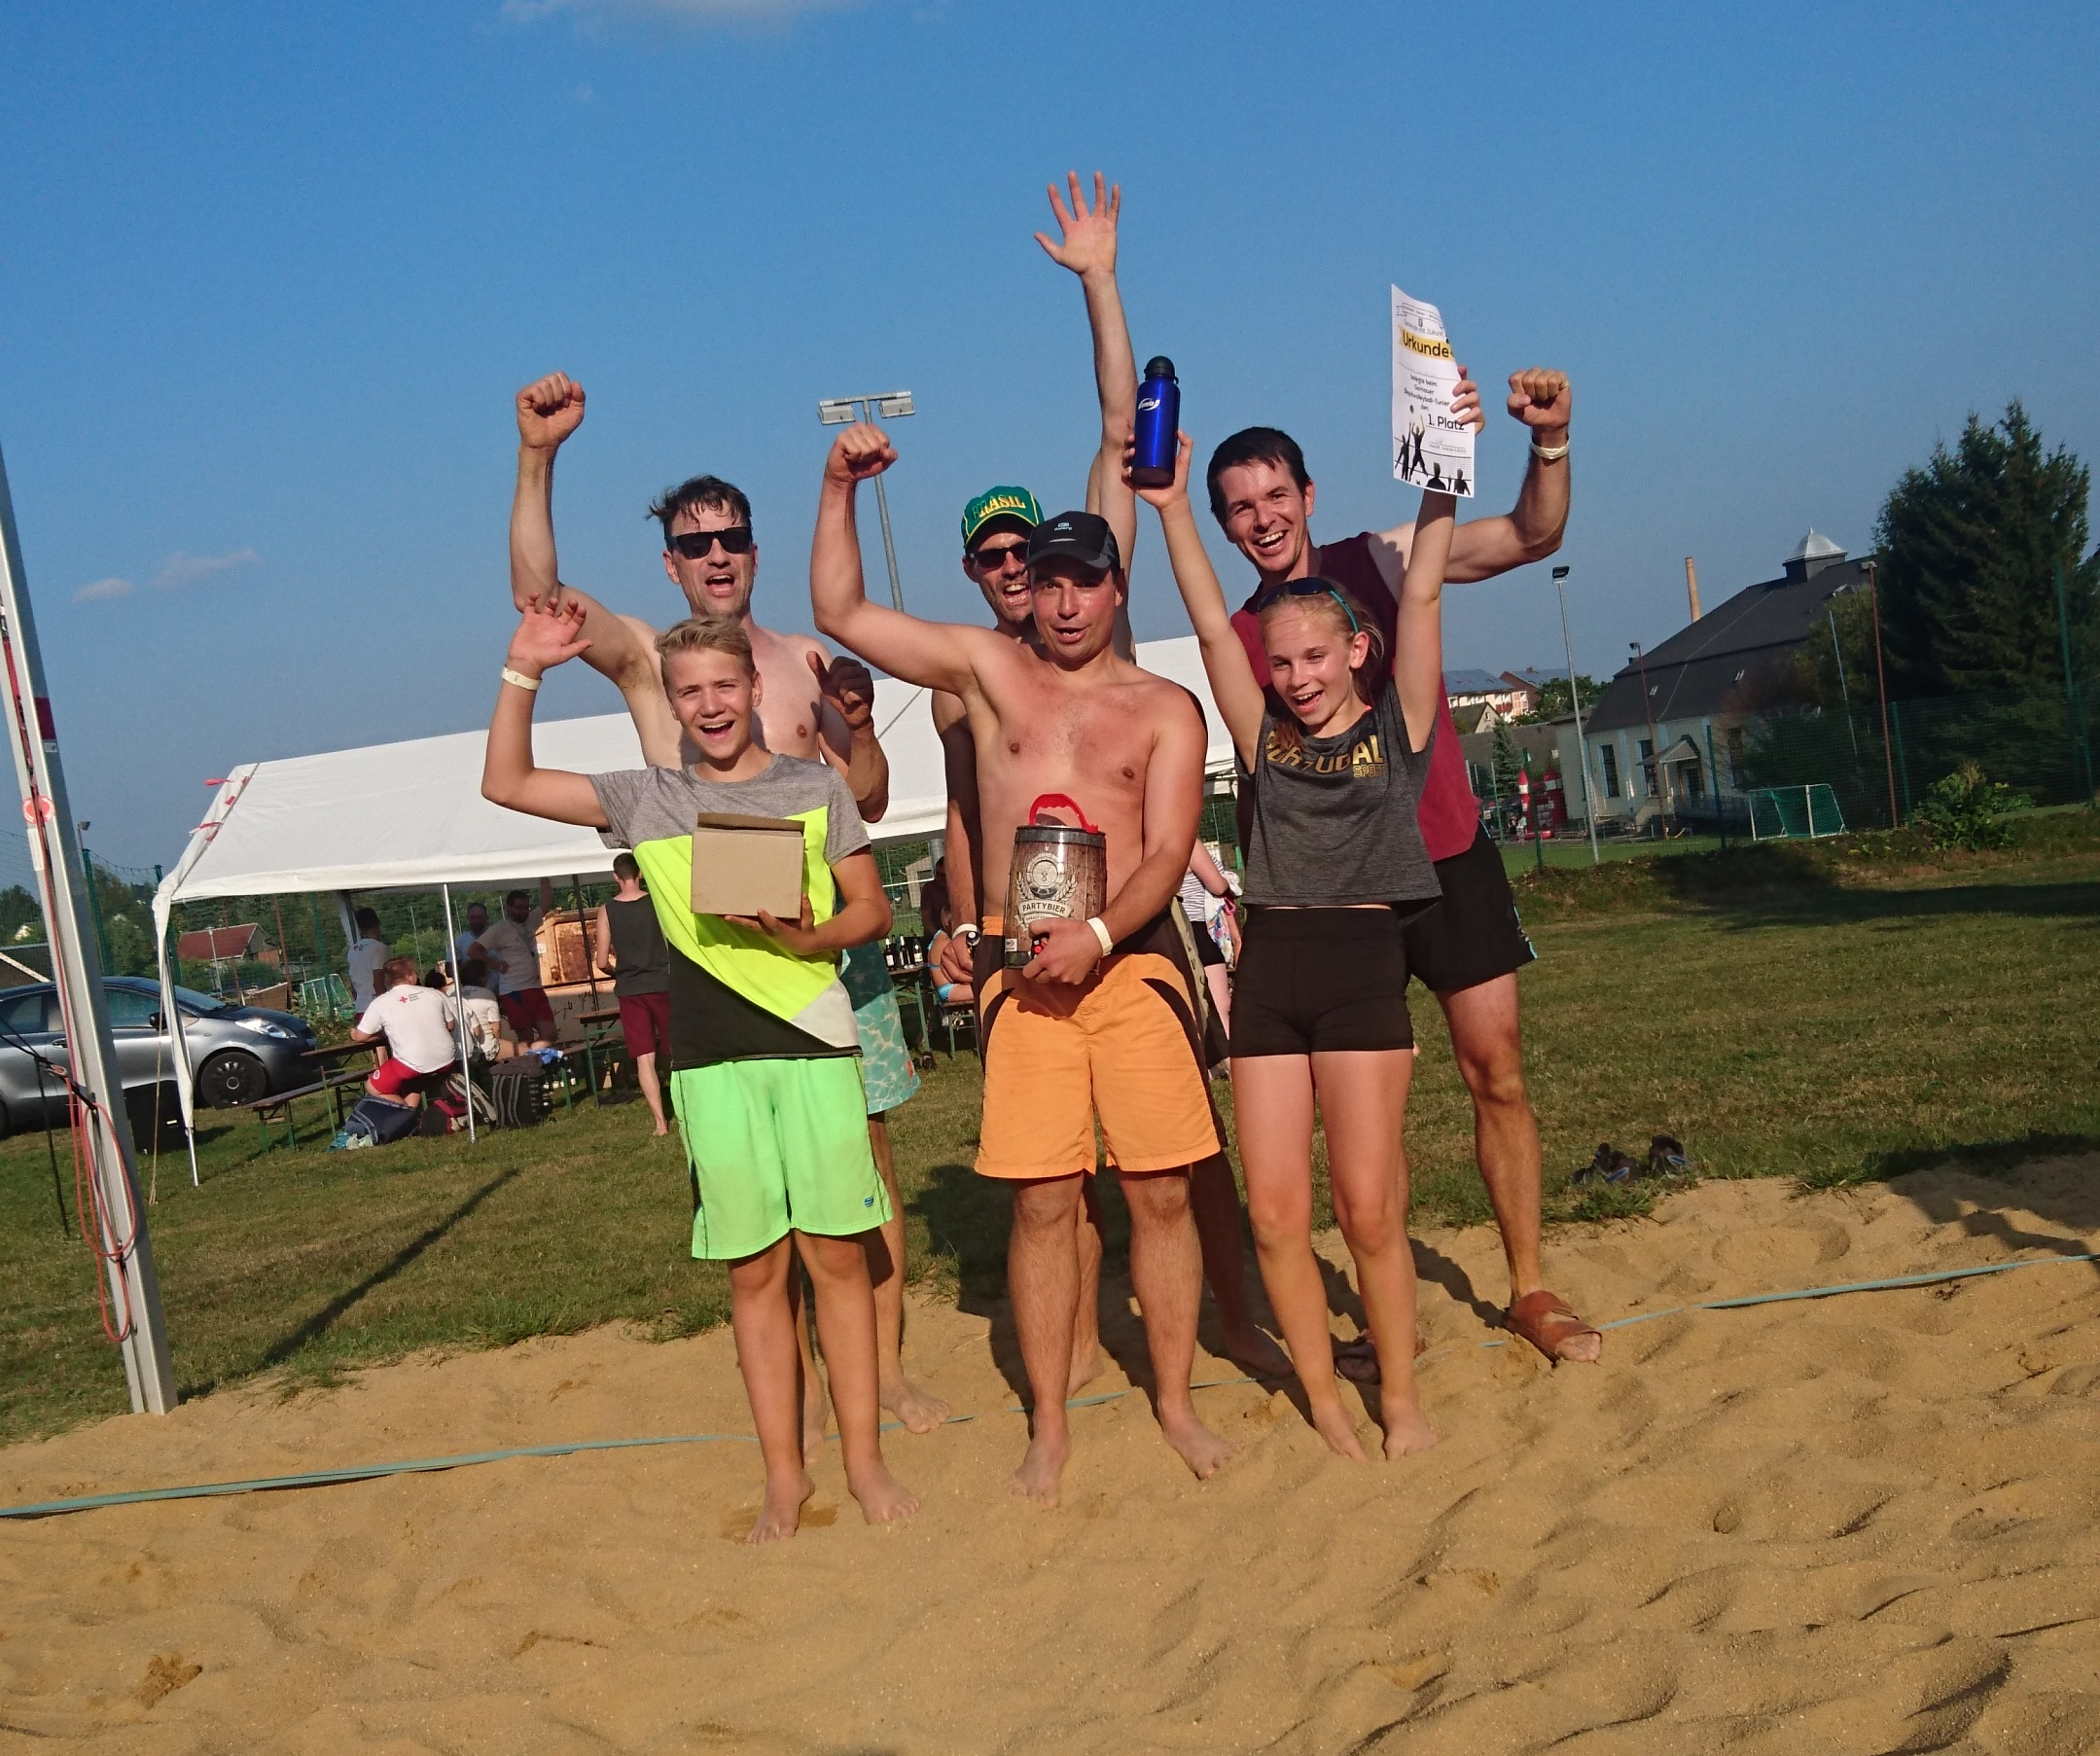 Victory in last tournament in the Freibad Gornau